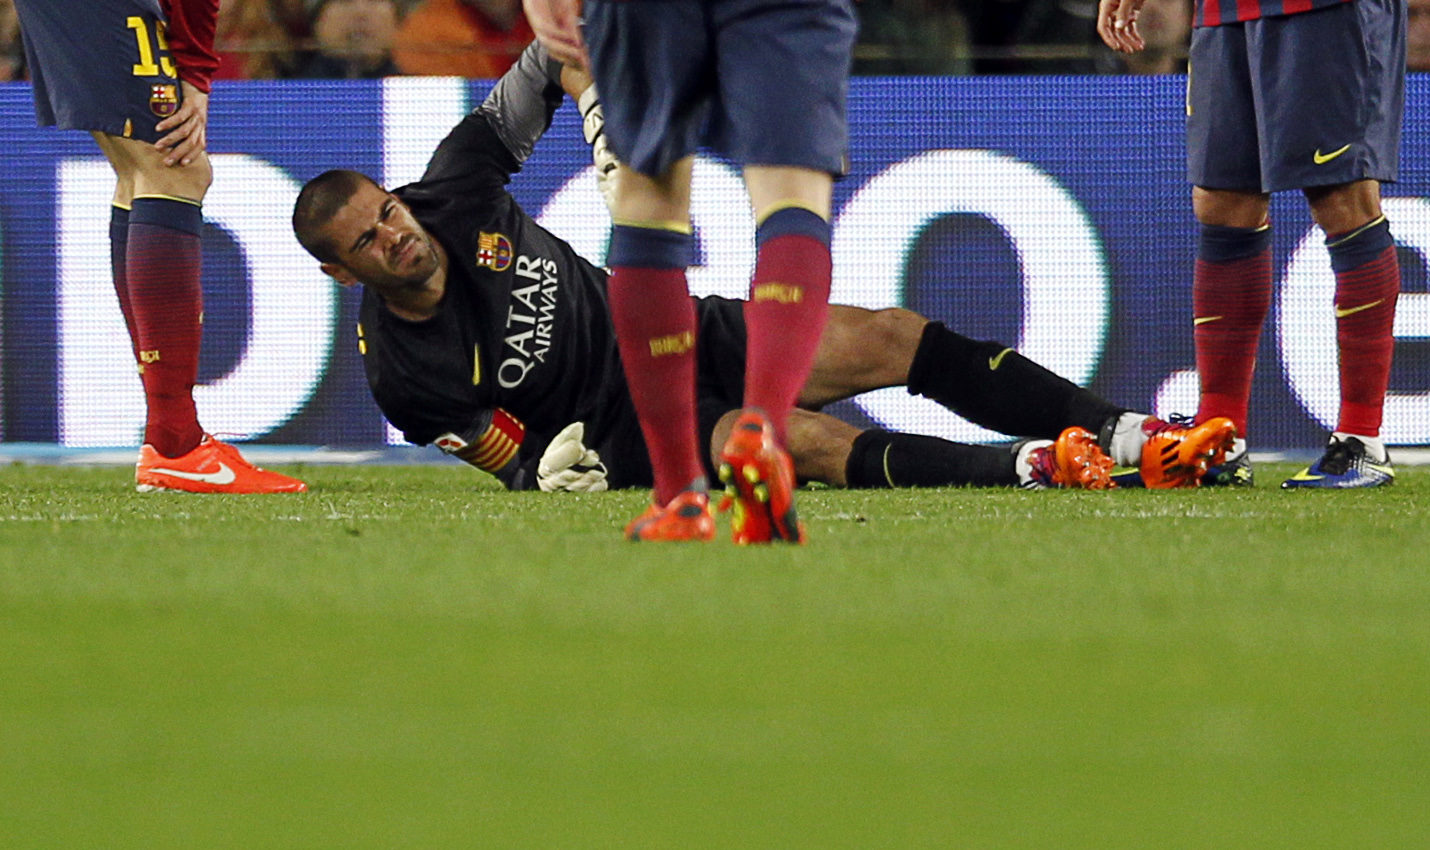 Victor Valdés knee injury, tearing his ACL in a football match